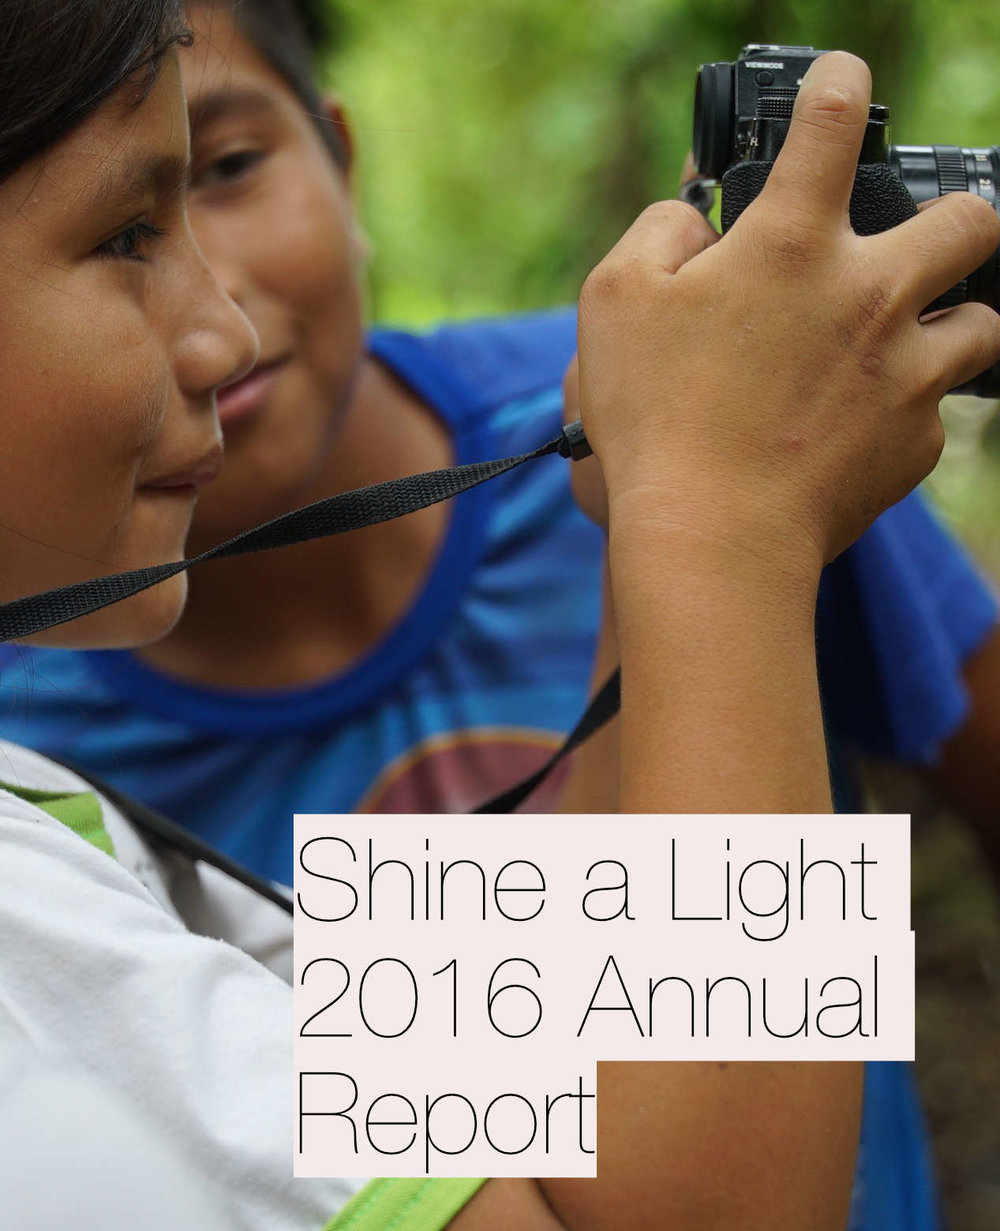 Shine a Light Annual Report, 2016